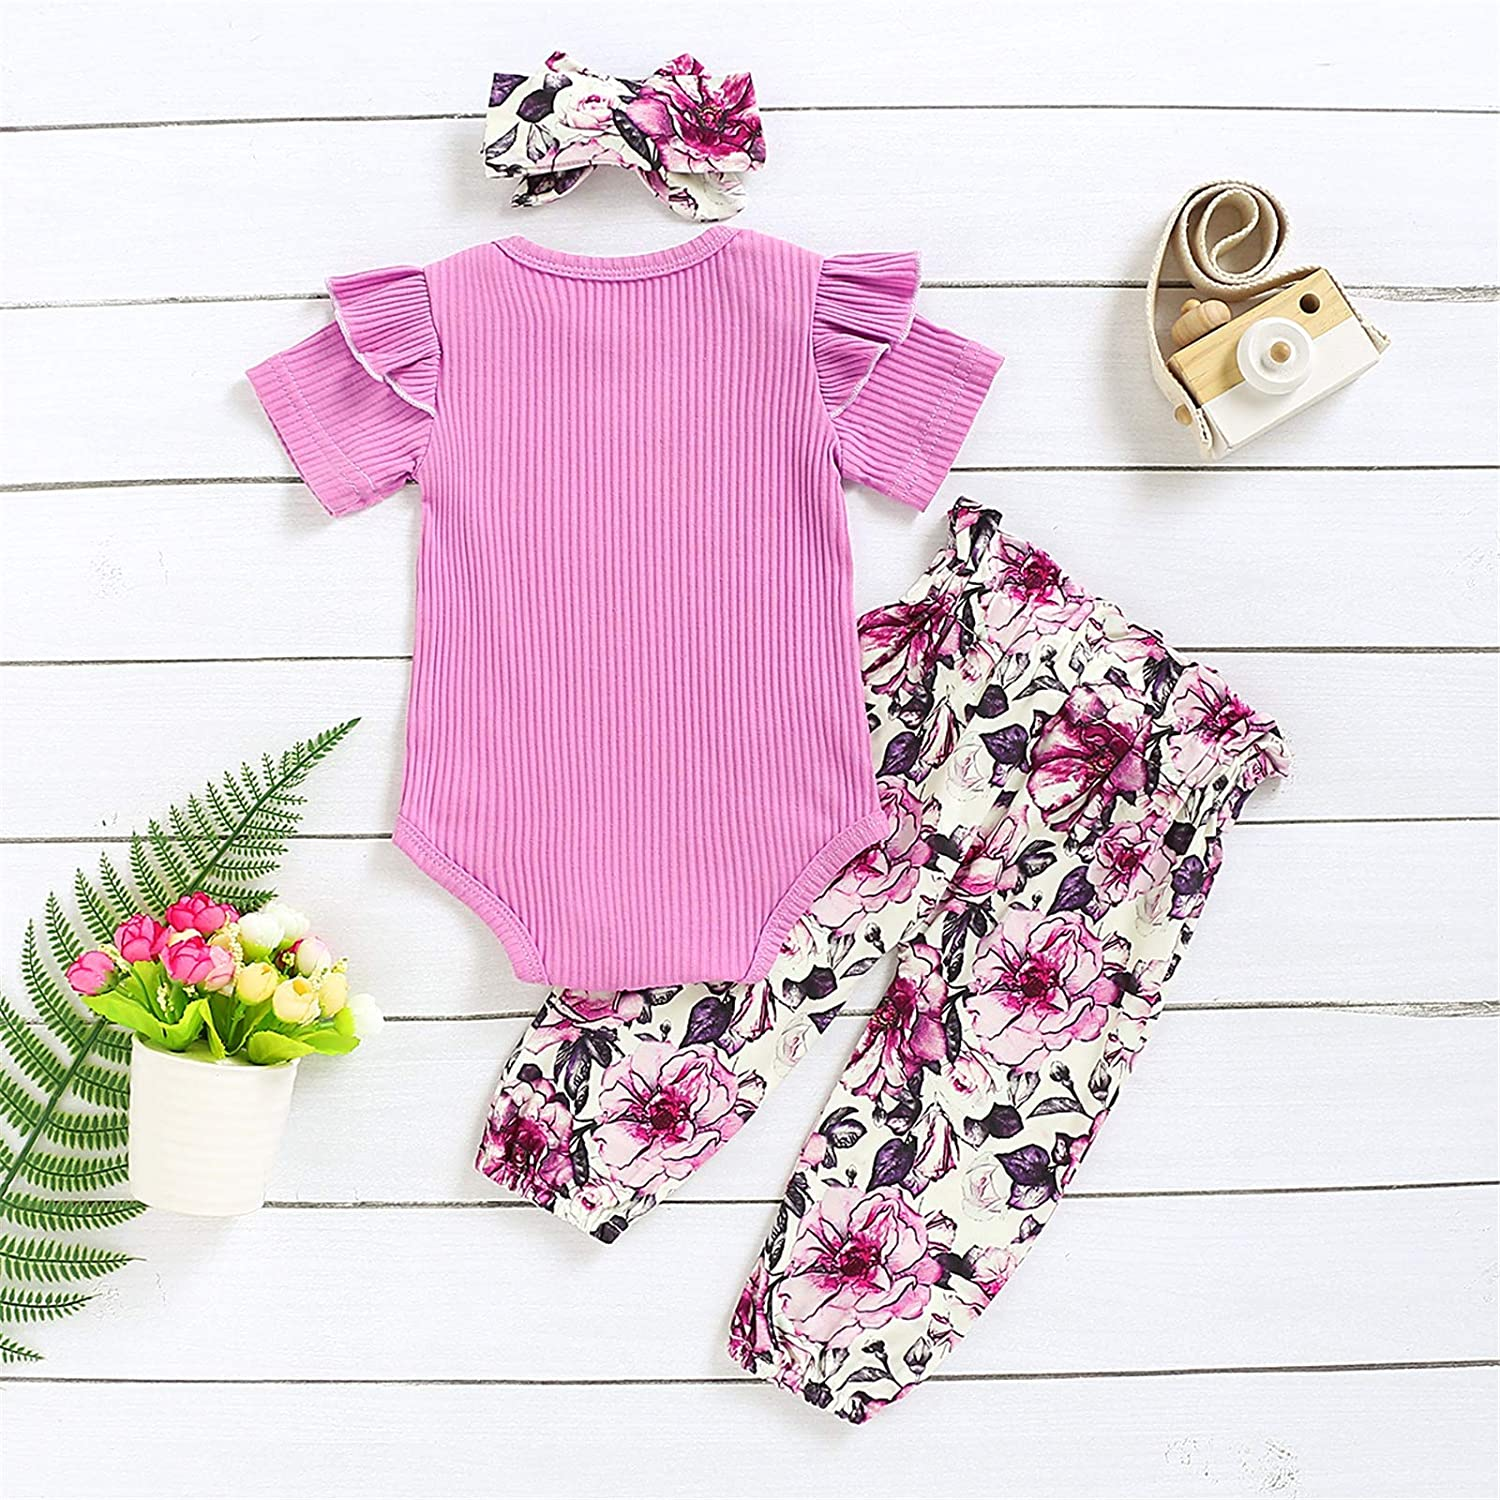 Dimoybabe Newborn Baby Girl Clothes Infant Summer Outfits Cute Short Ruffle Romper